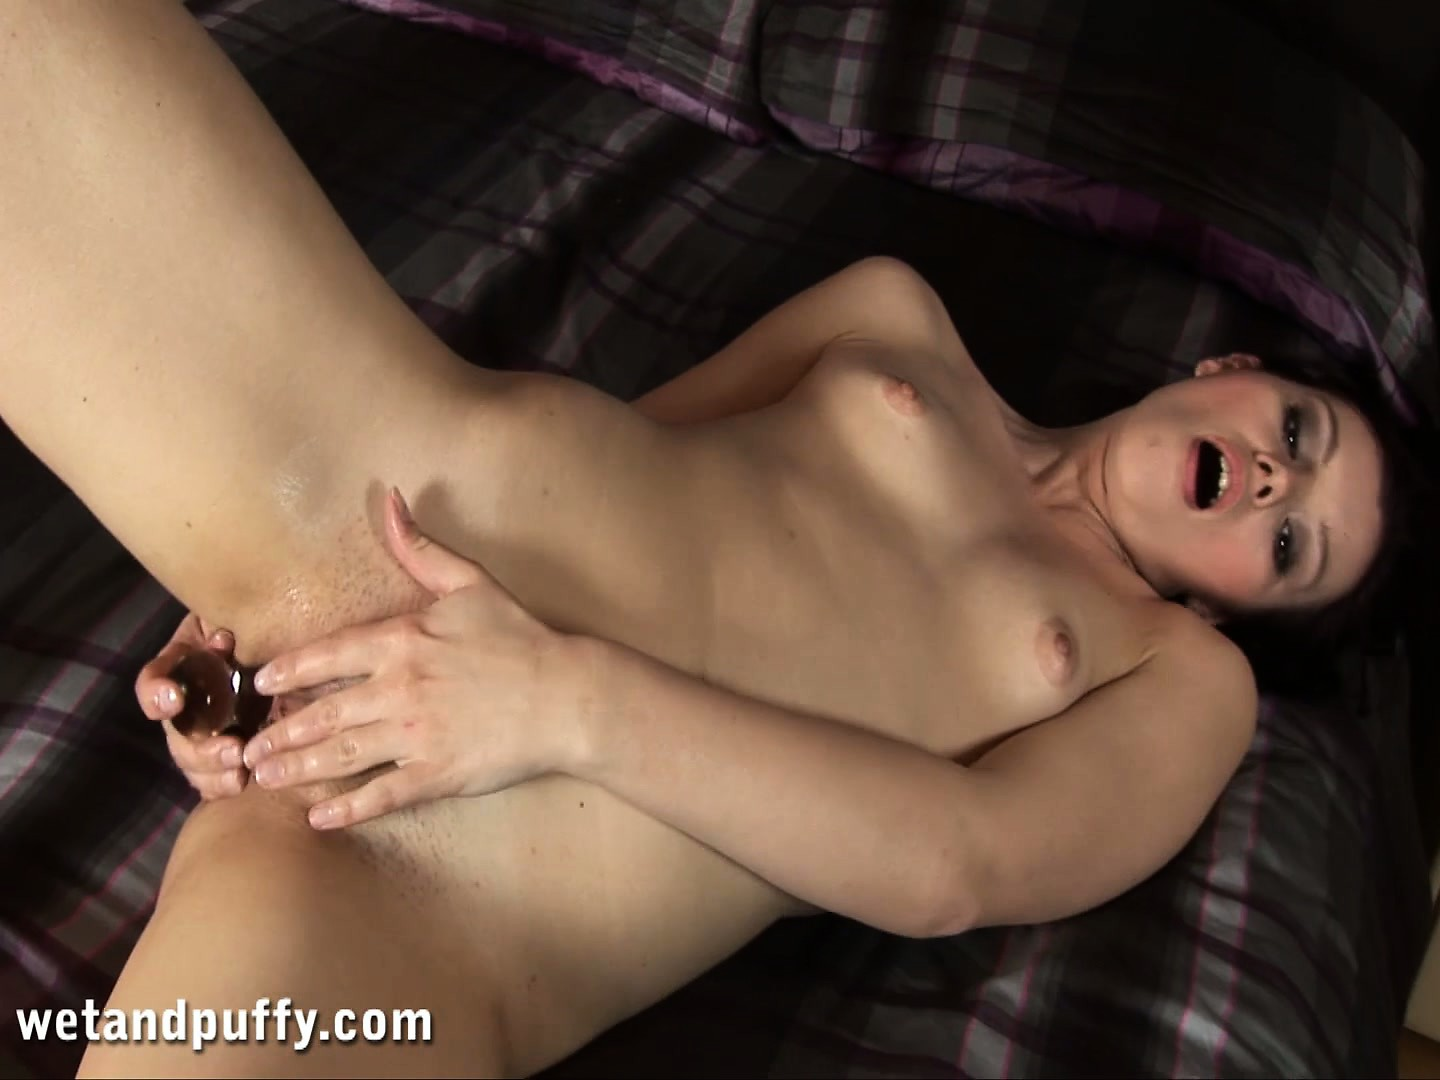 Porno Video of Tight Brunette Babe With A Petite Physique Using A Glass Toy